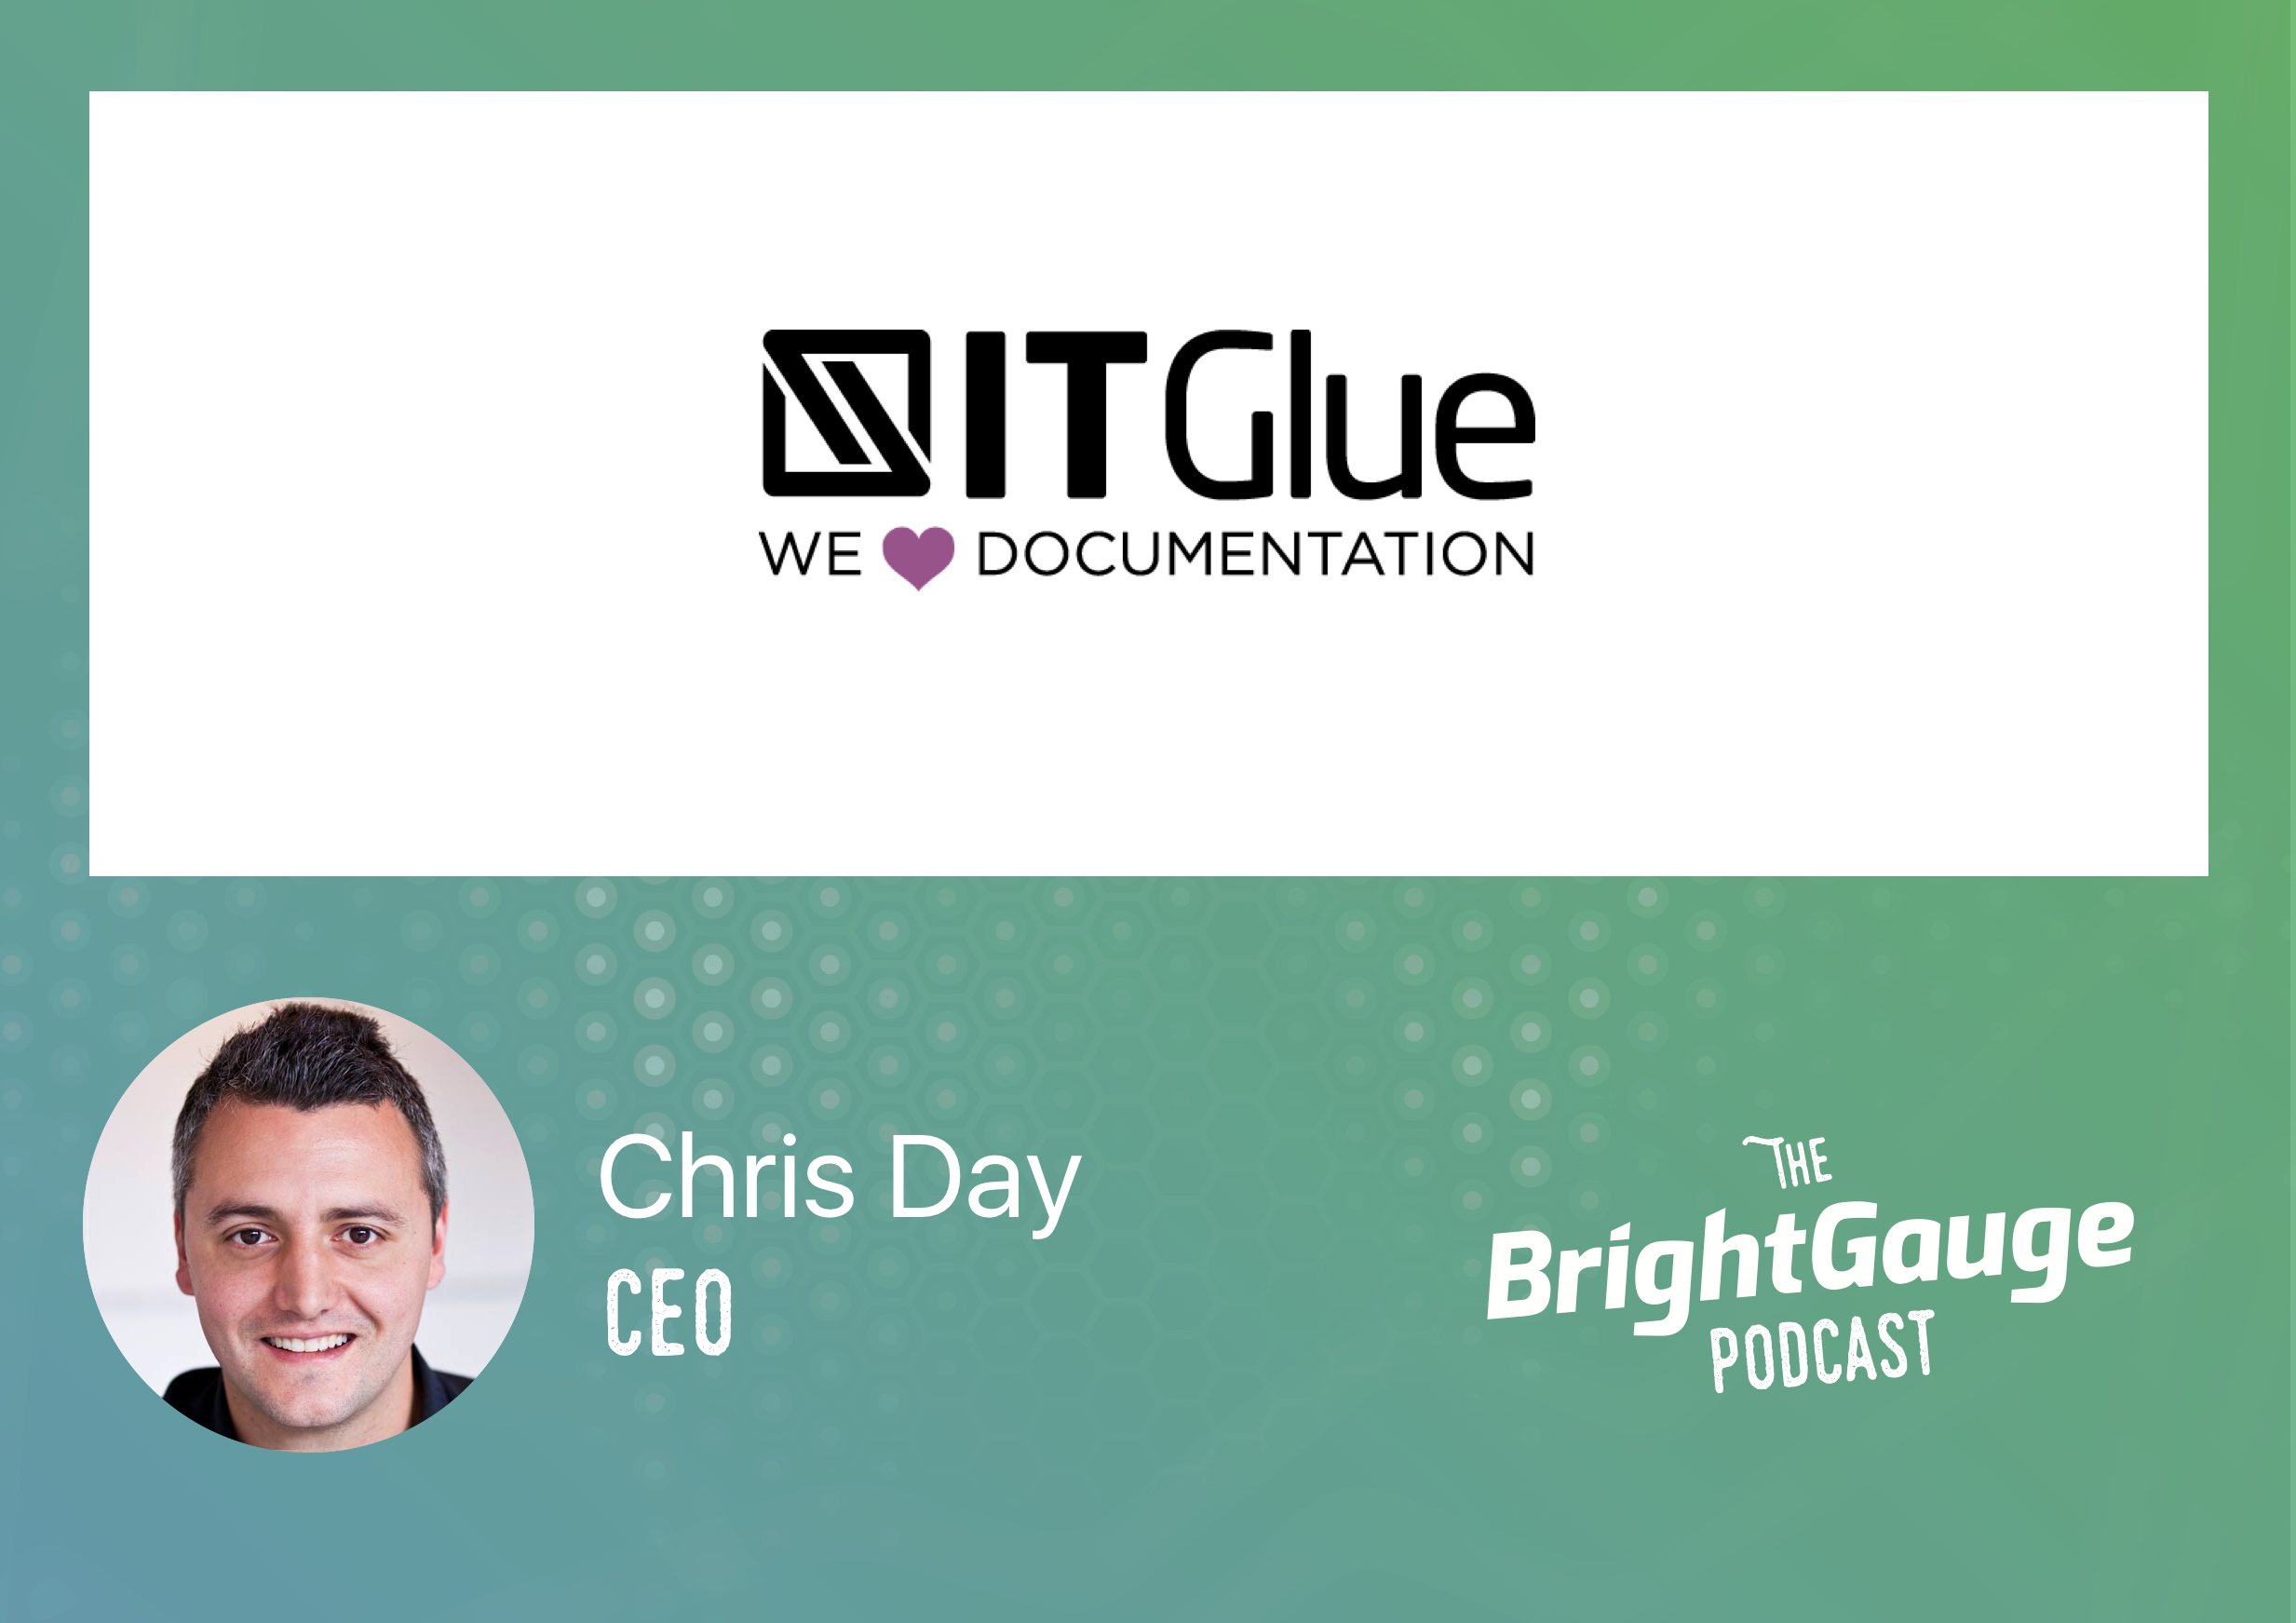 [Podcast] Episode 36 with Chris Day of IT Glue